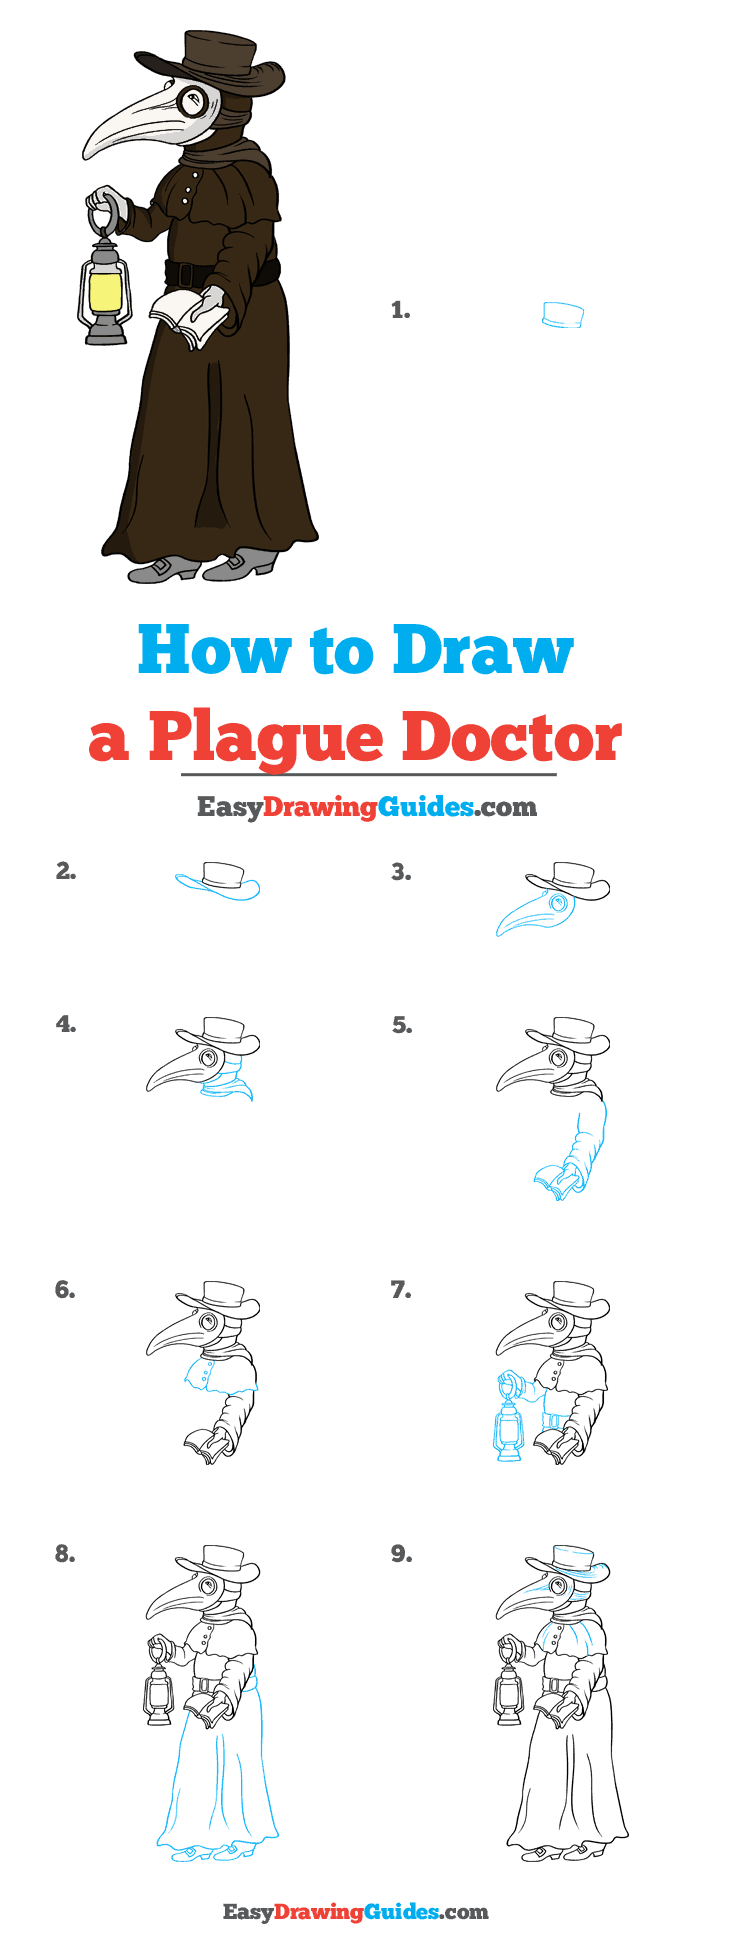 How to Draw Plague Doctor